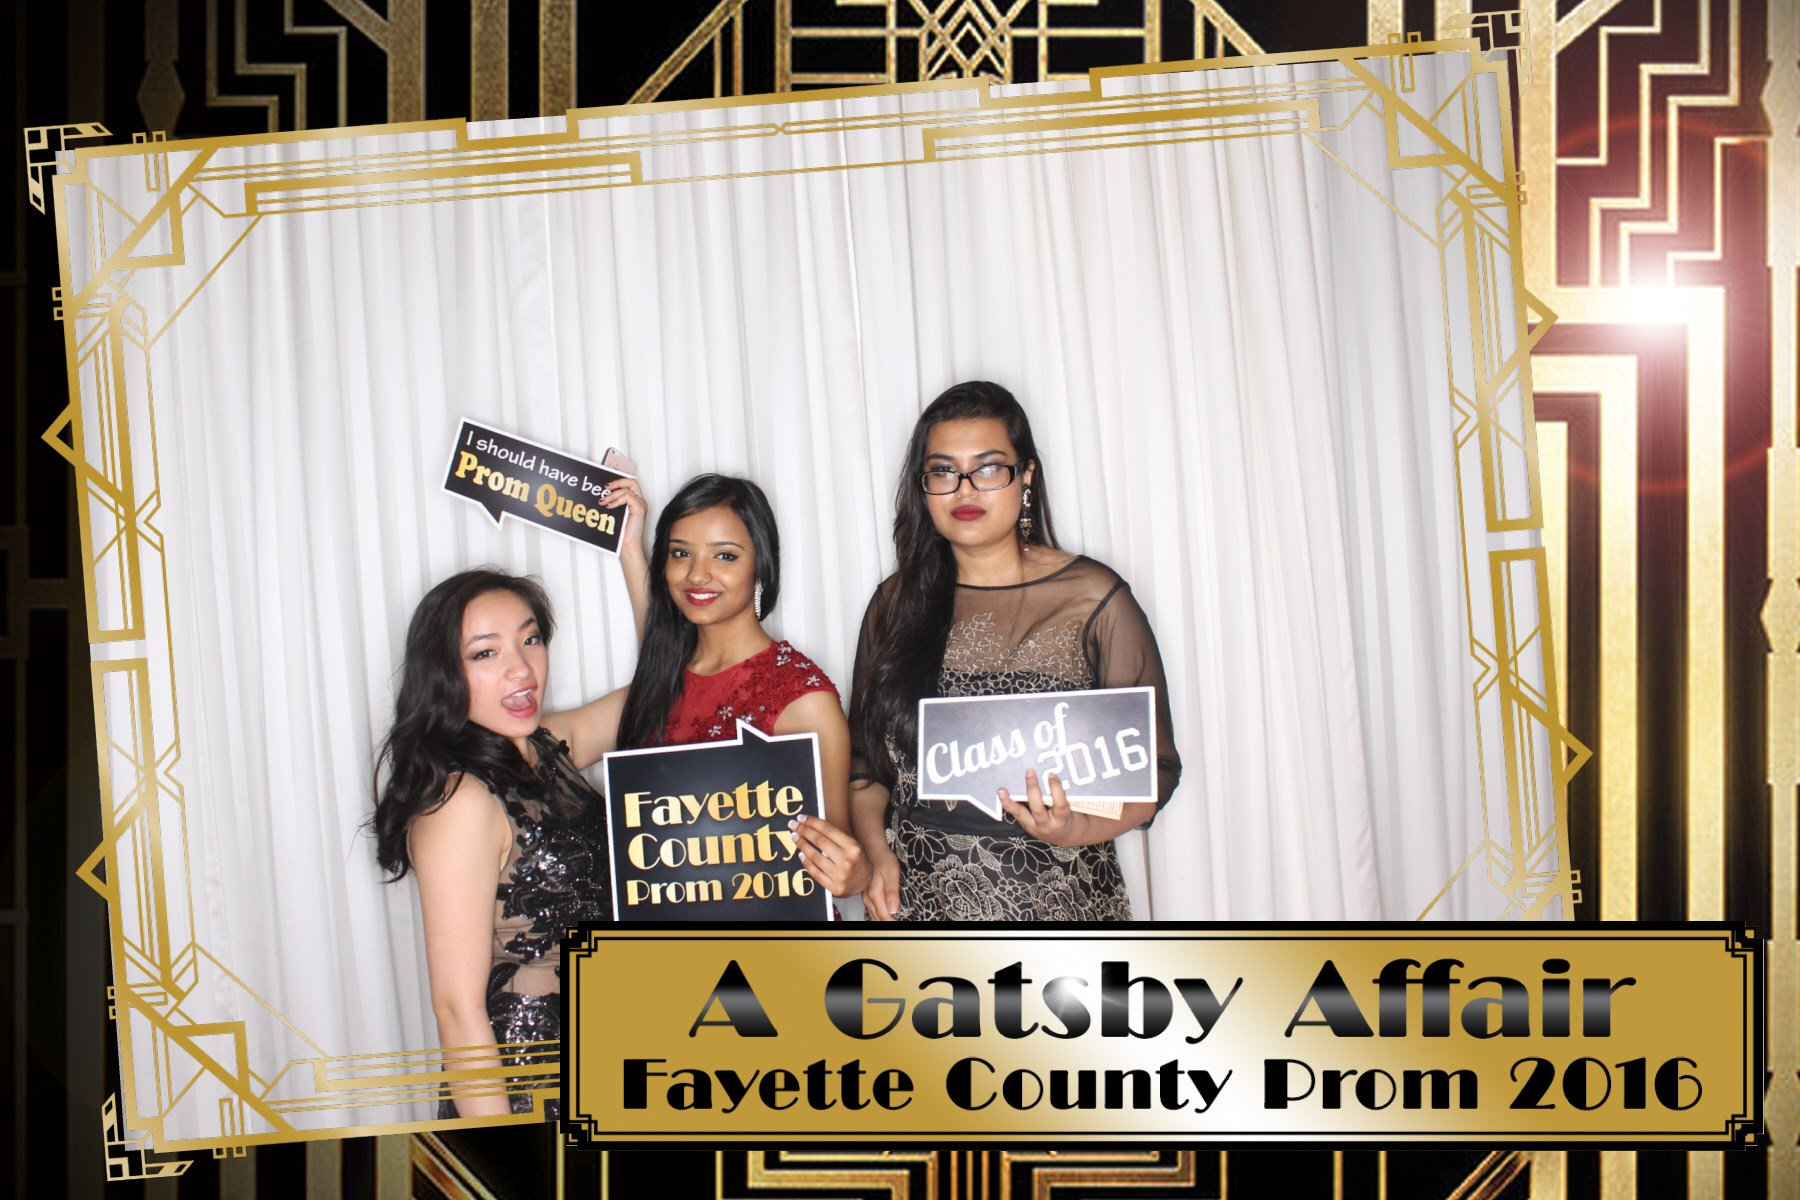 Fayette County High School Prom 2016